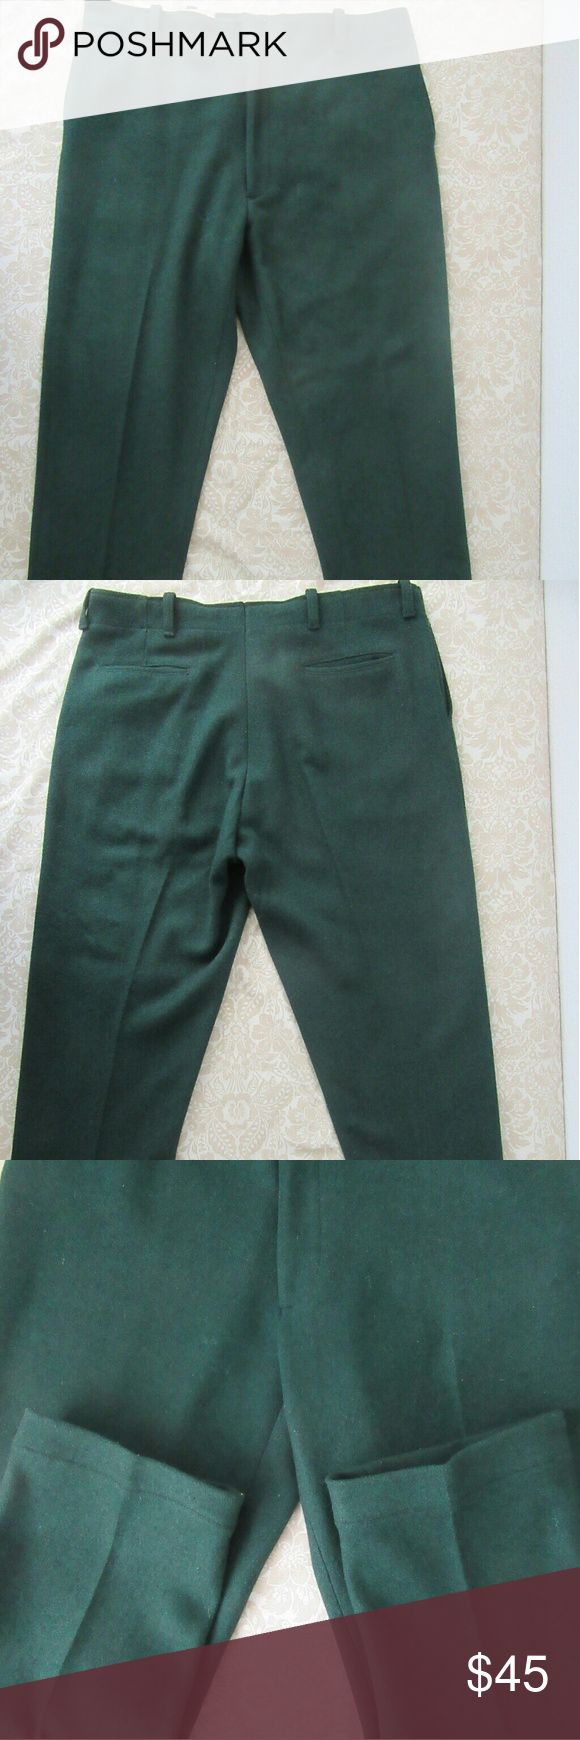 Northway Water Repellent Wool Hunting Pants 40x30 excellent shape  Northway Water Repellent Wool Hunting Pants Huge 40x30 Hunter Green?  ? northway Pants